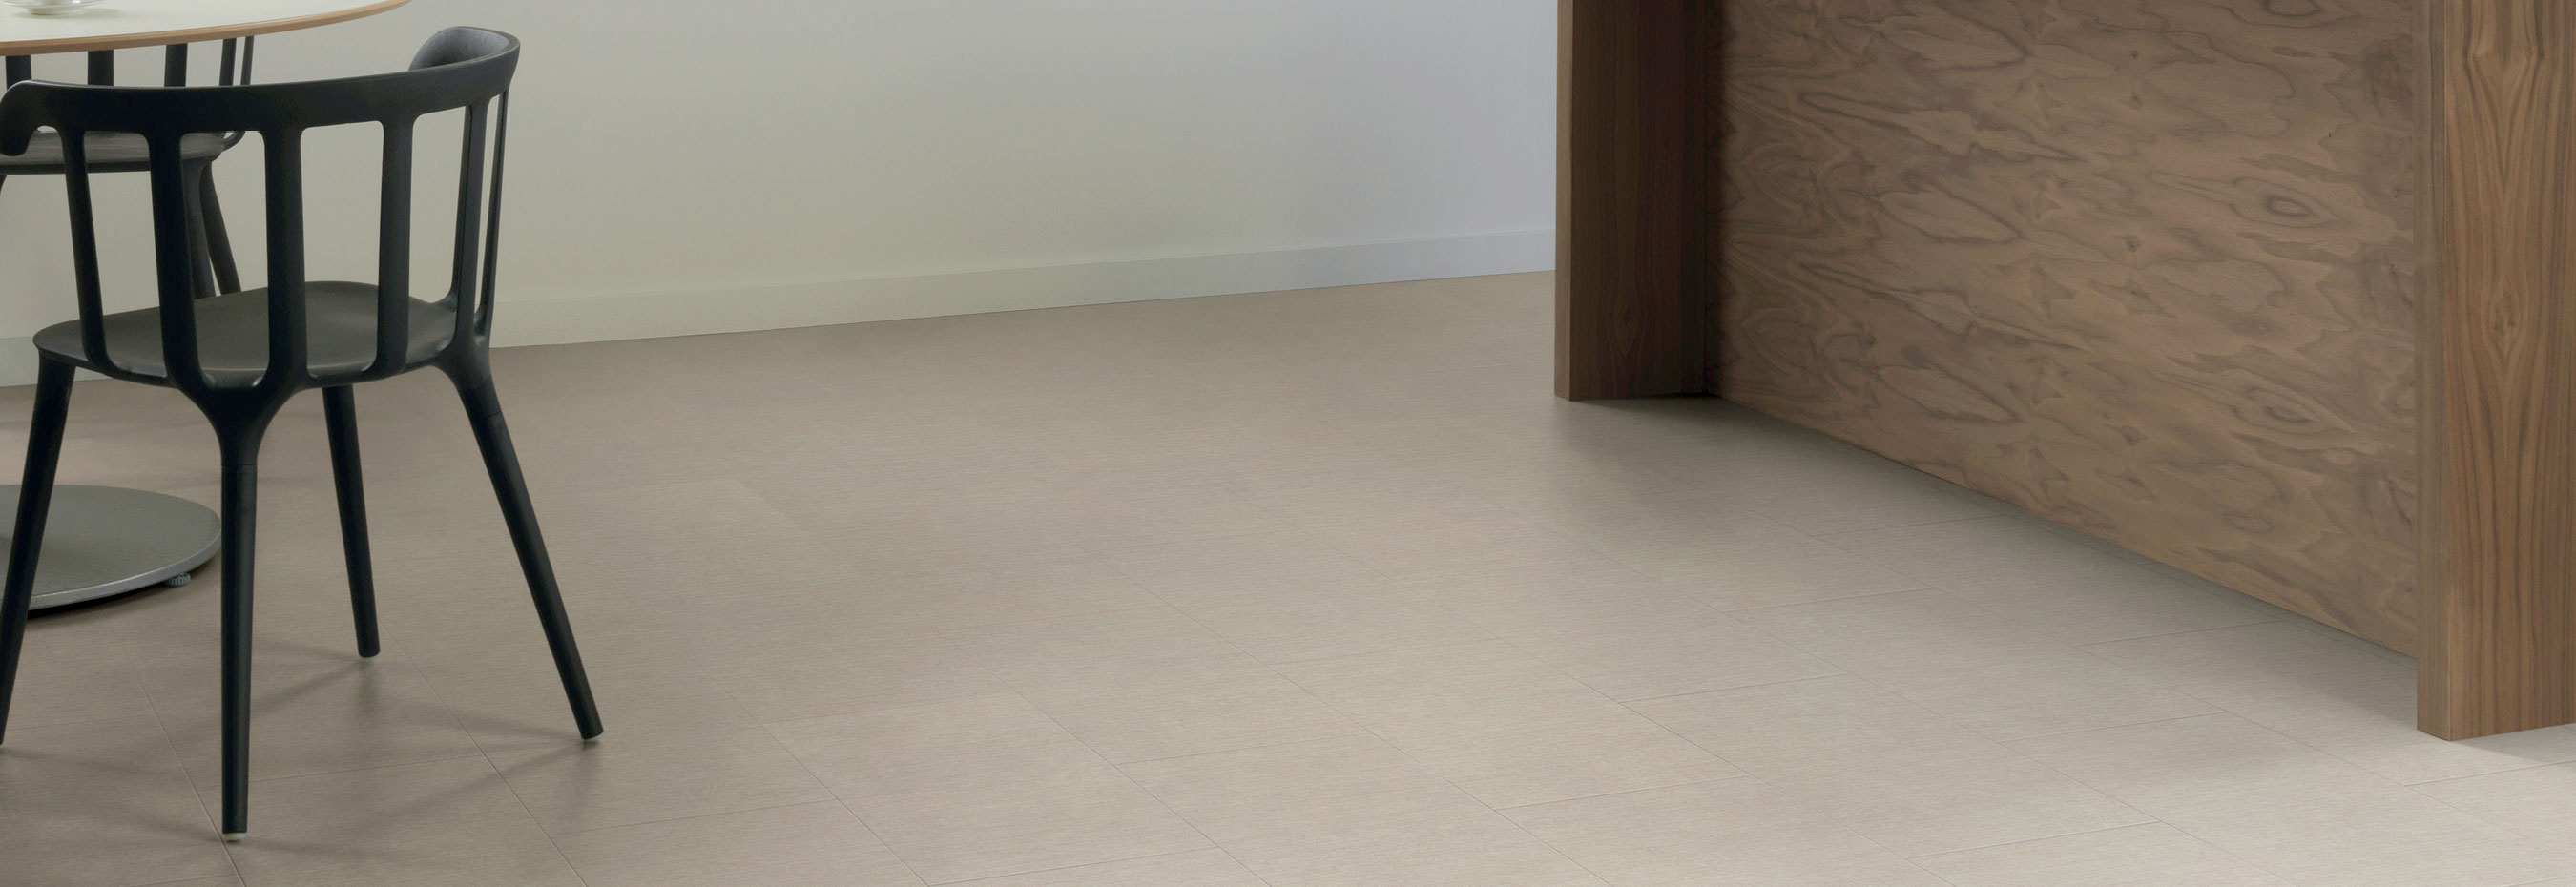 Sift Stone Canvas Commercial Lvt Flooring From The Amtico